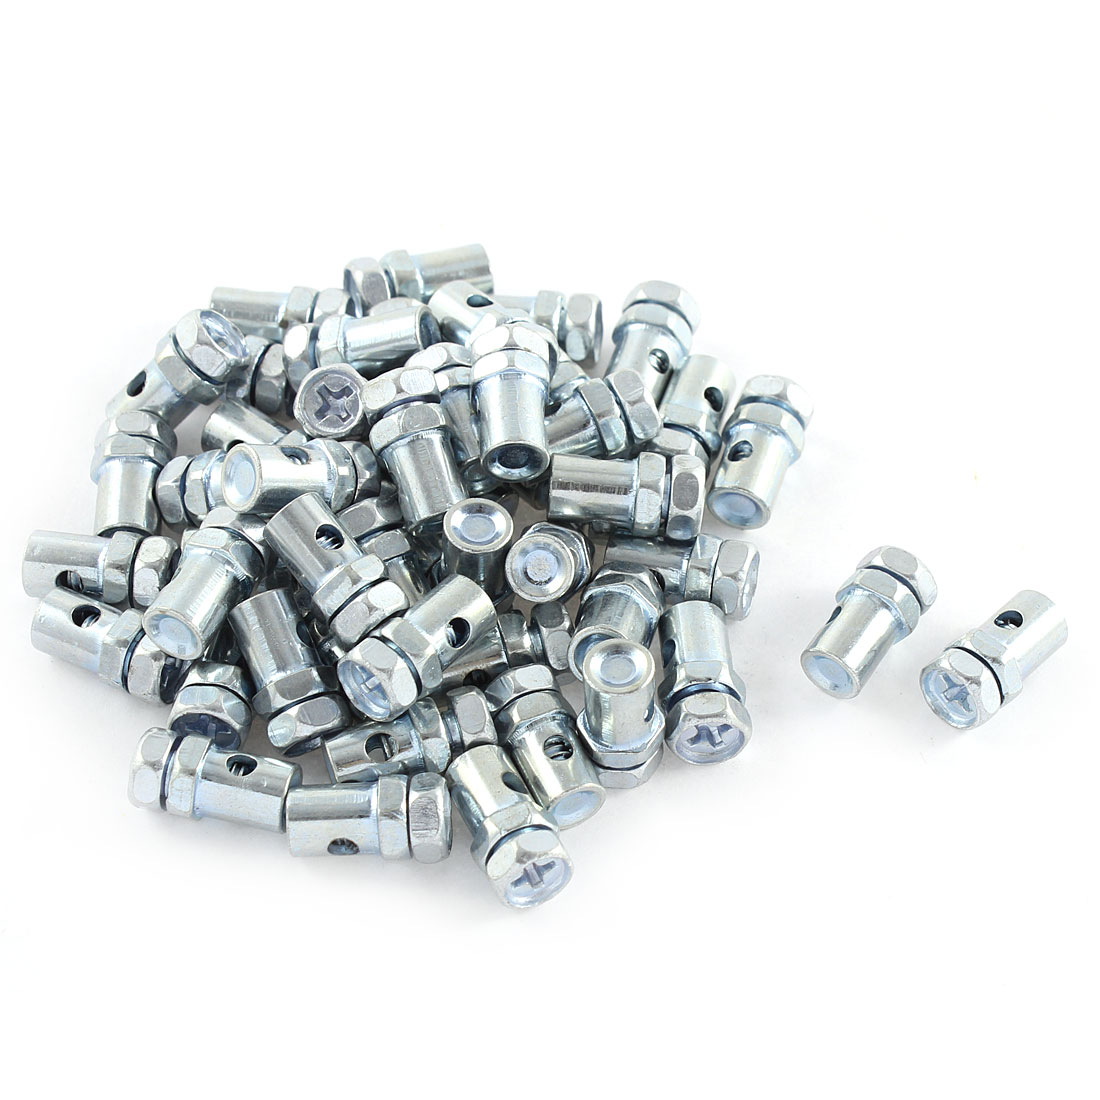 50 Pcs 8mm x 2mm Solderless Nipple Phillips Head Screw Motorcycle Cable Bolts Top Fitting Barrel Type